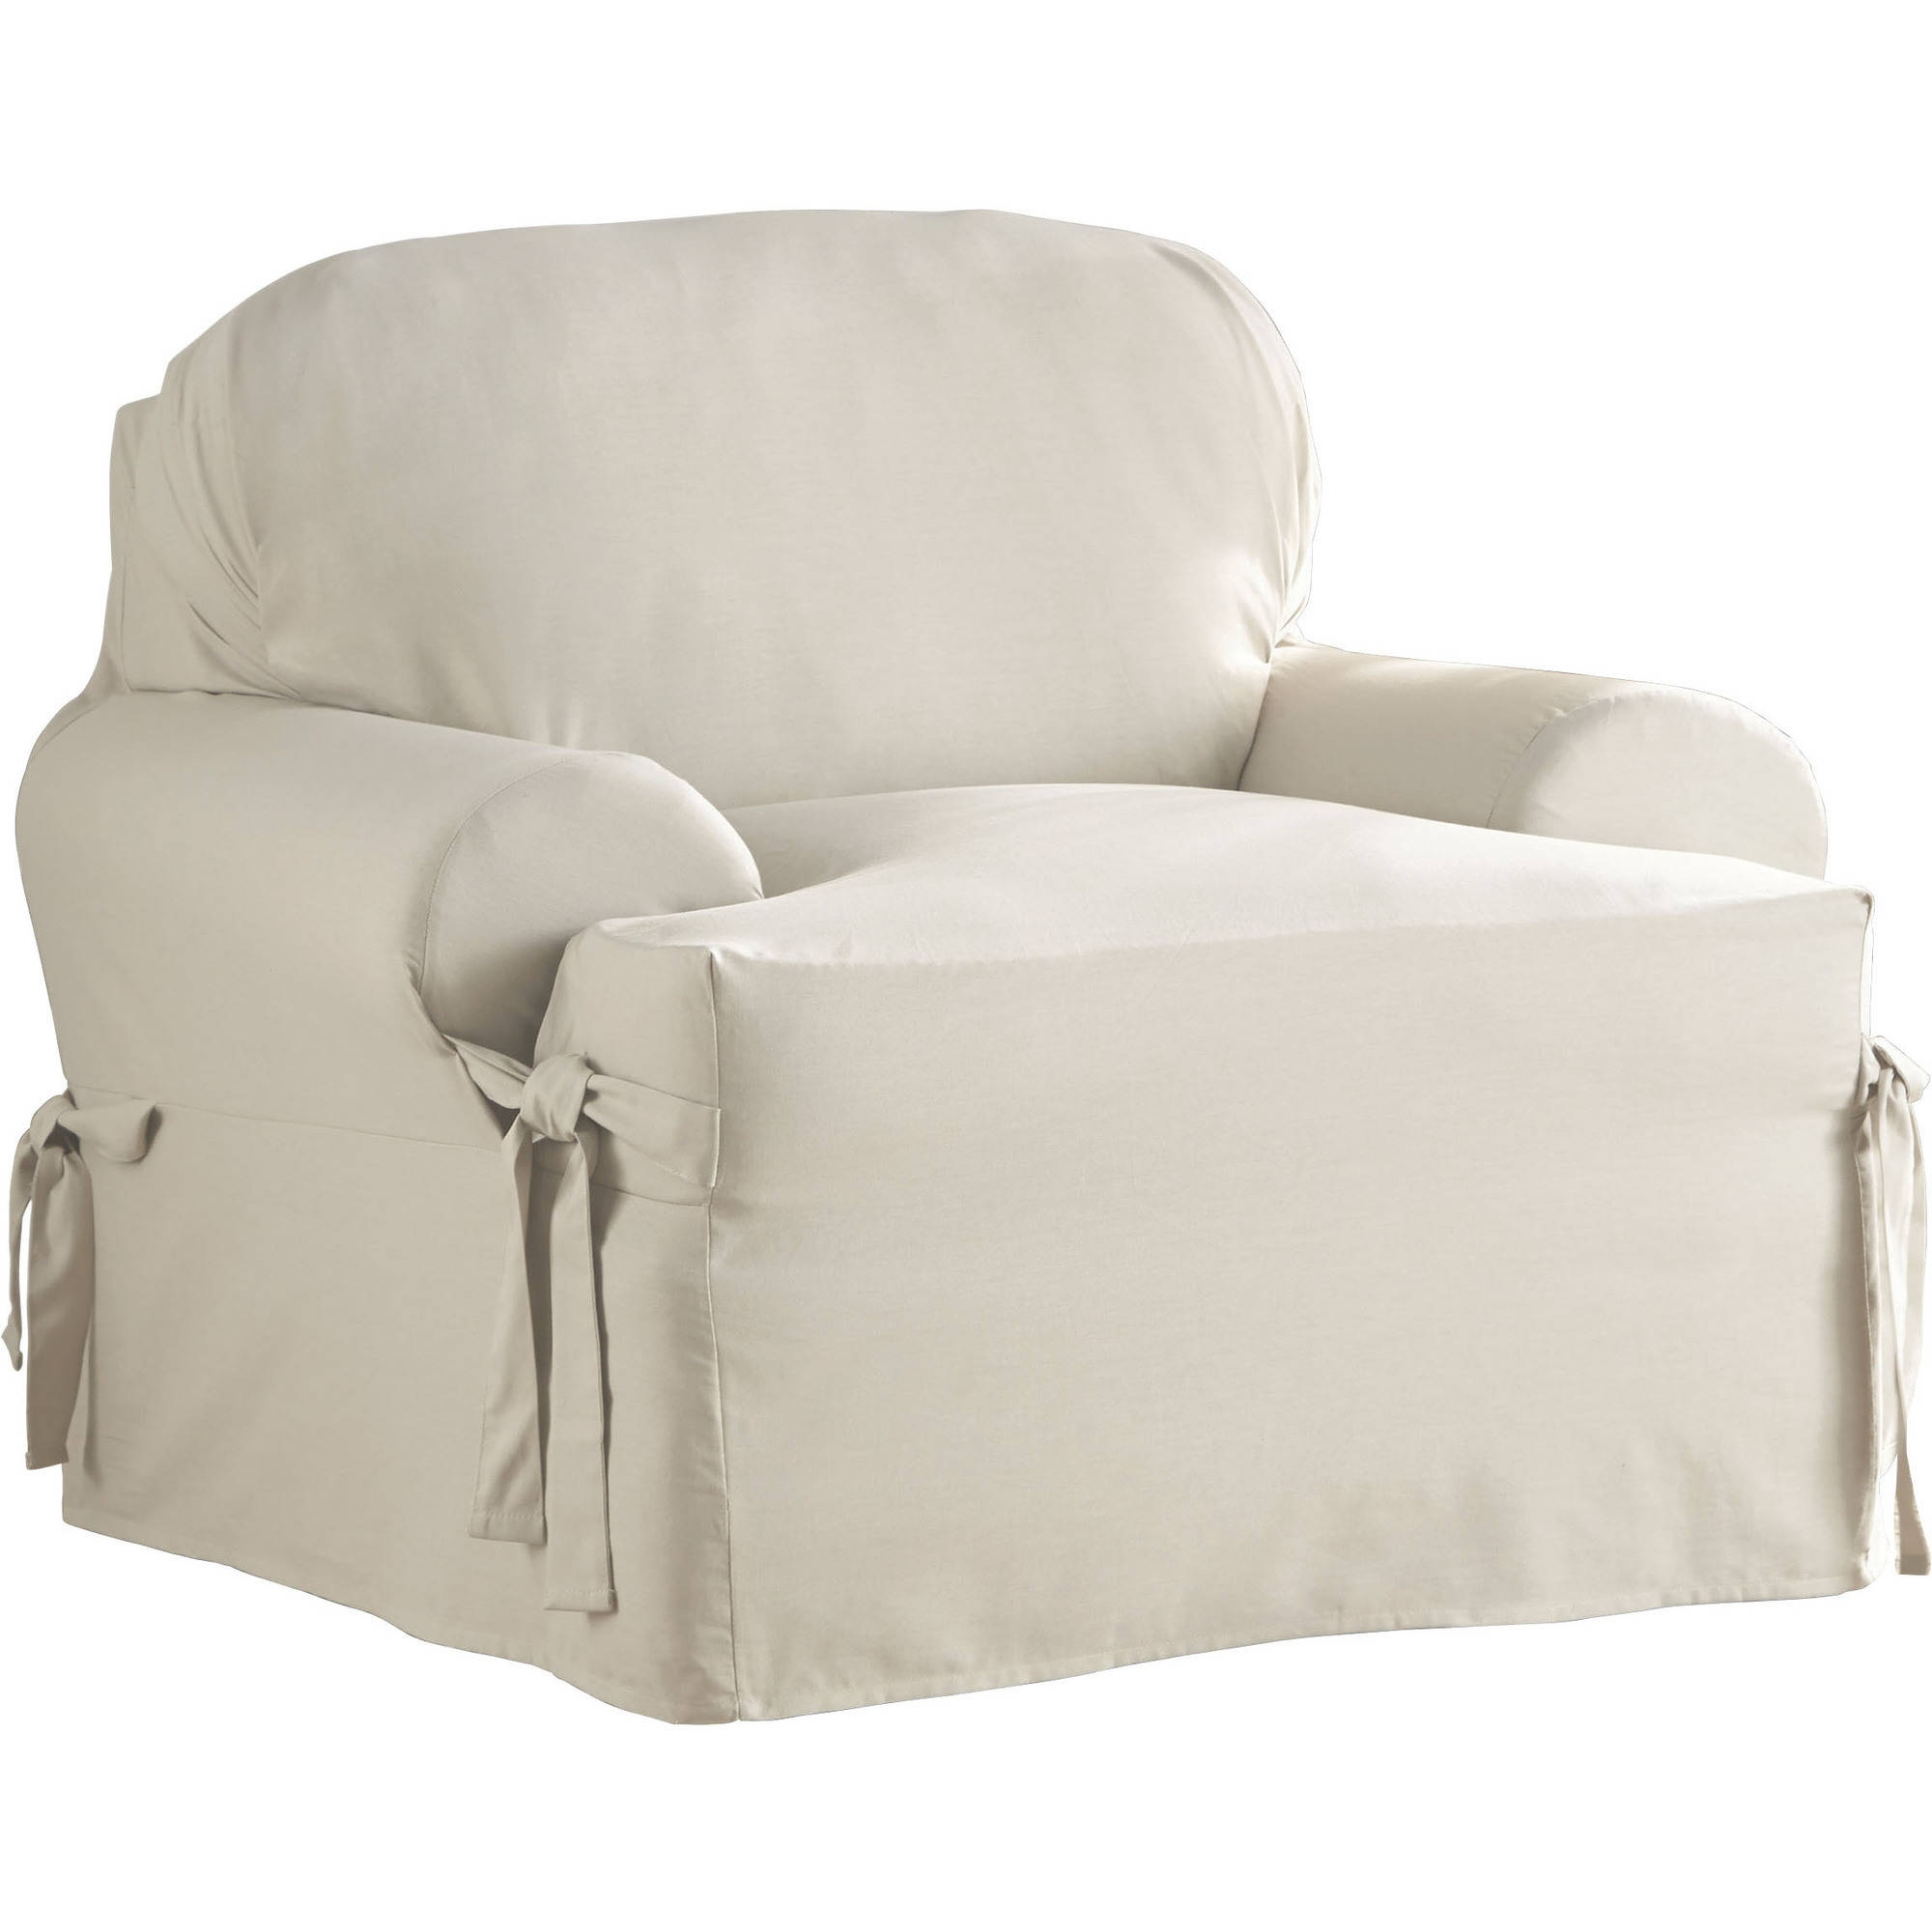 Slipcovers Walmart With Slipcovers For Chairs And Sofas (Image 11 of 15)